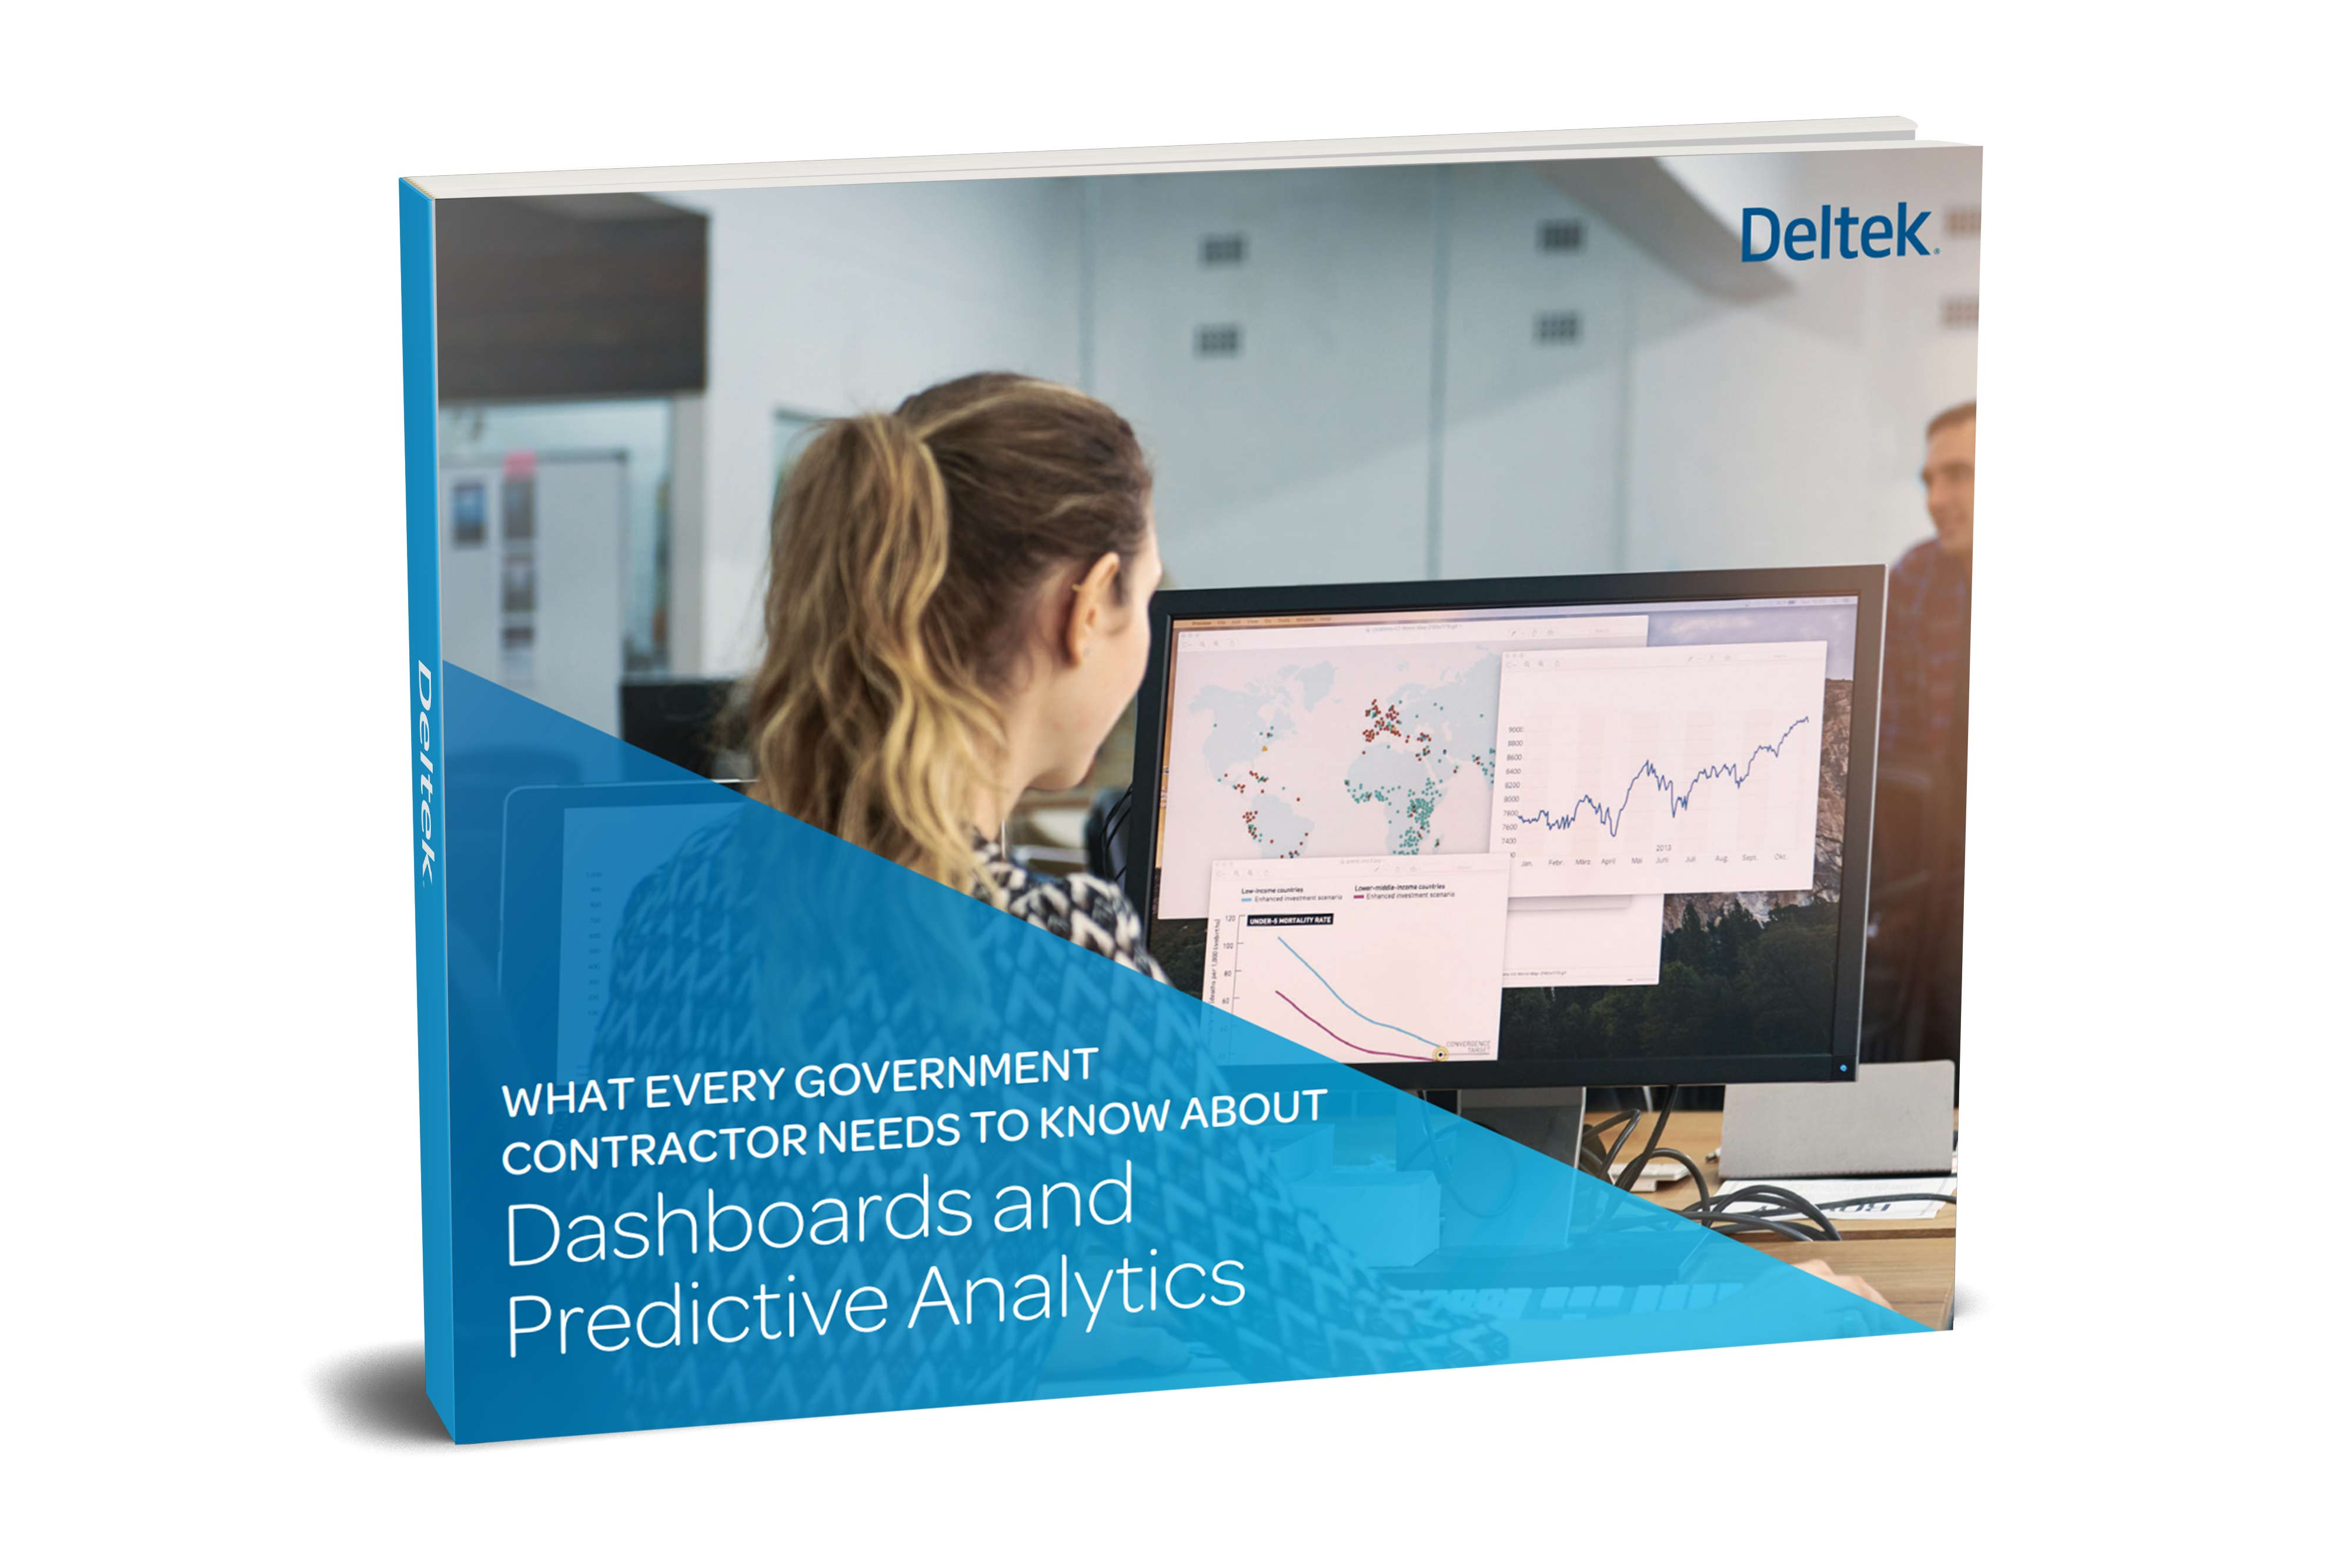 Dashboard and Analytics for Government Contractors